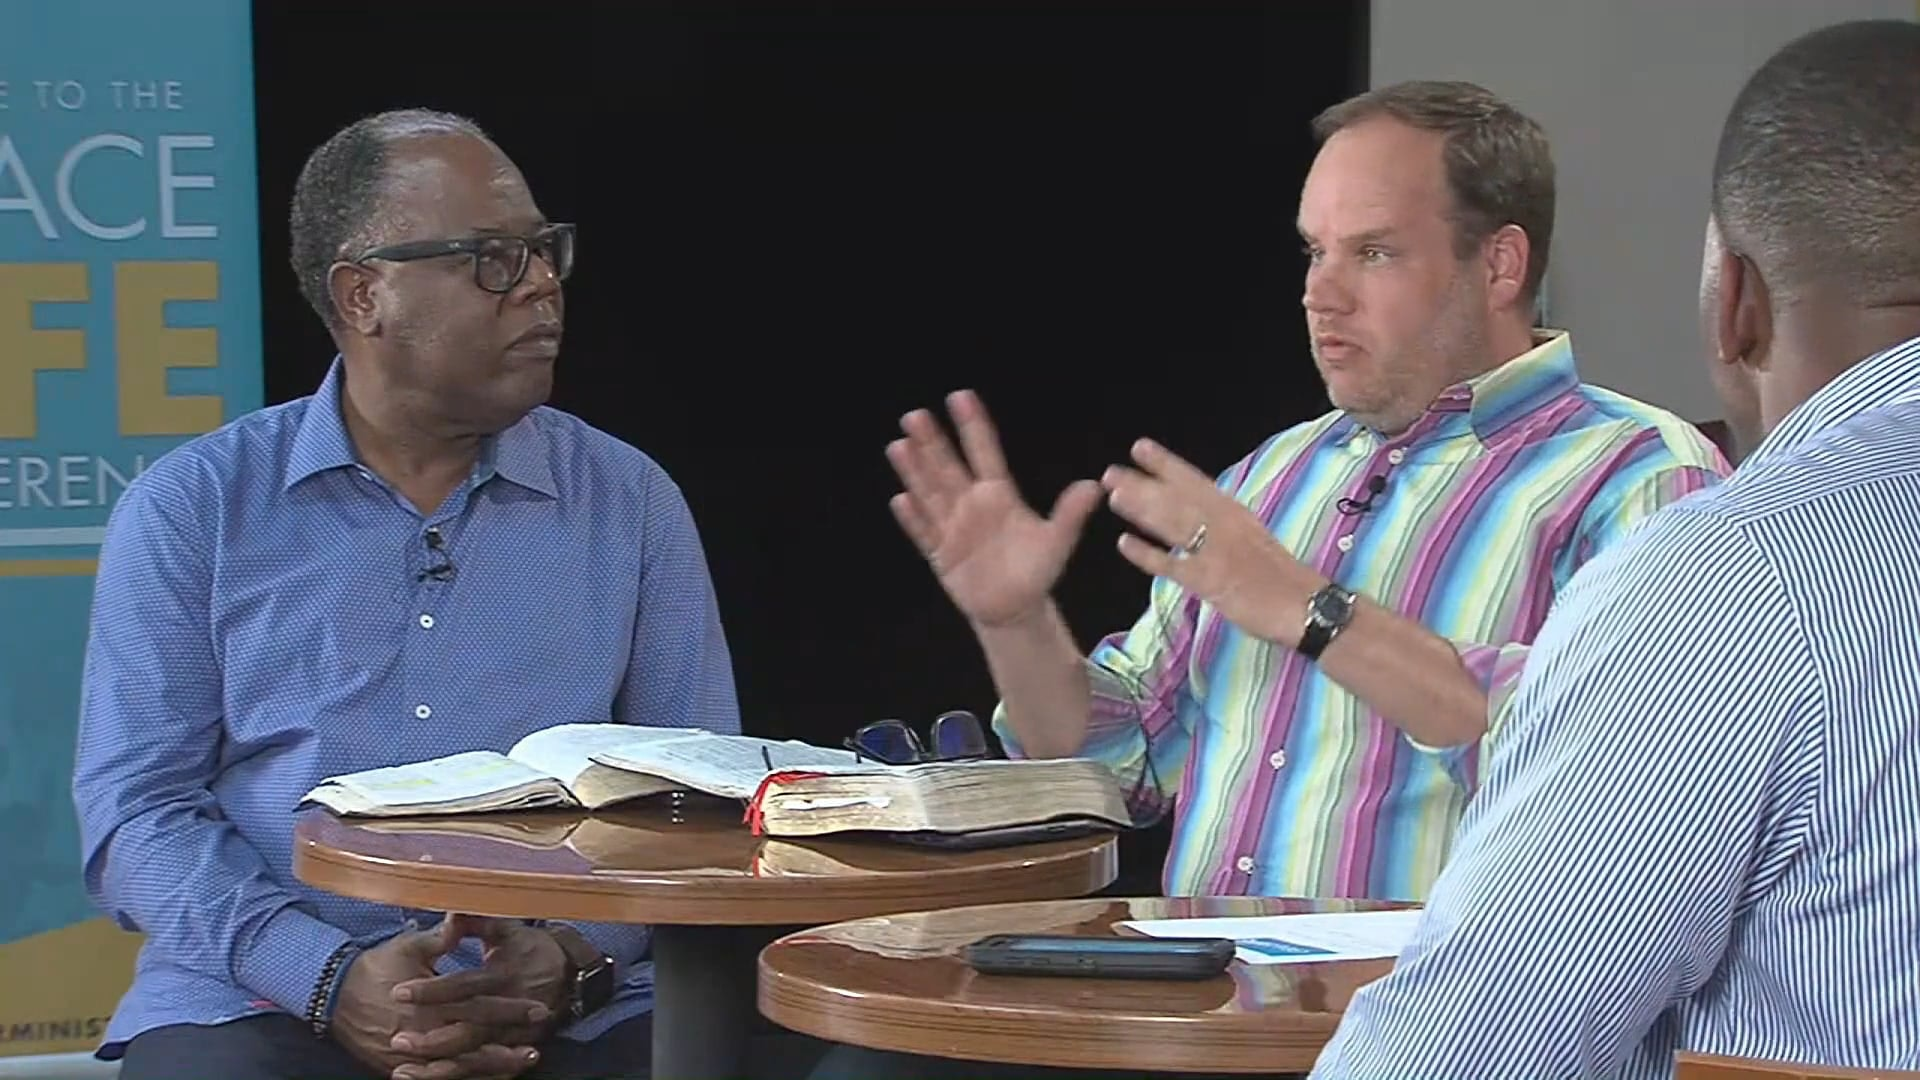 Watch Grace: A Round Table Discussion Part 3